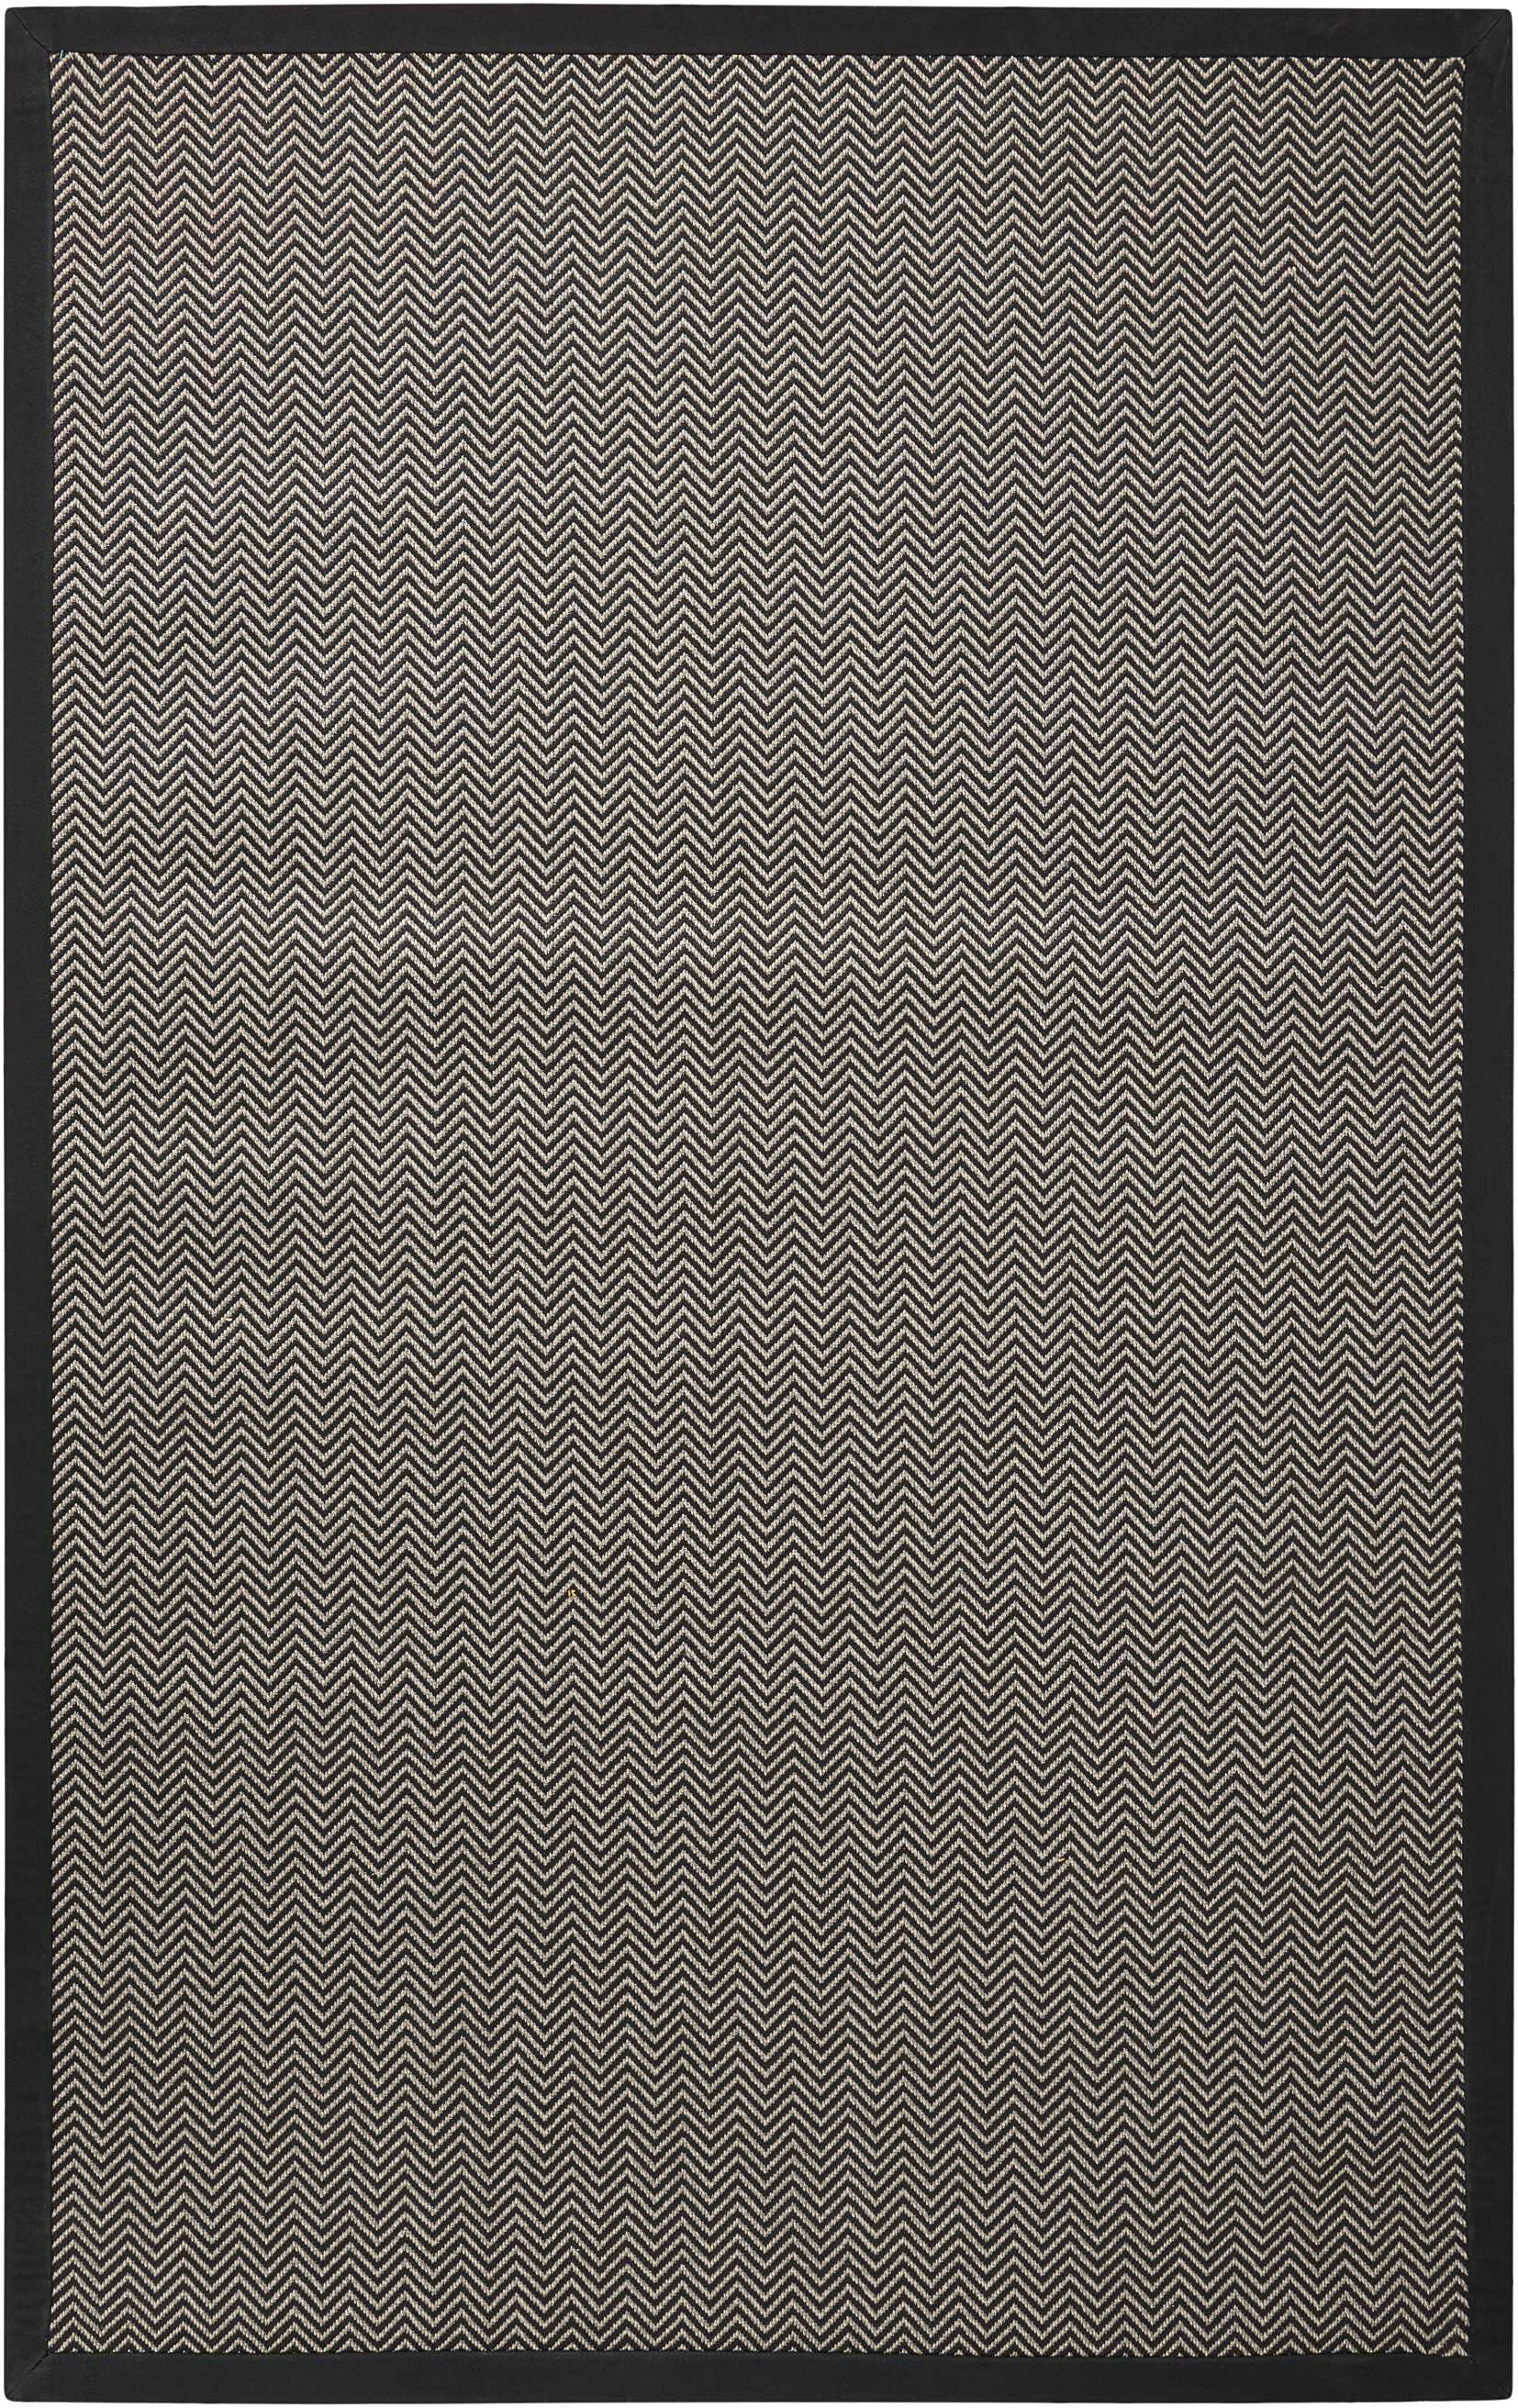 Stephenson Black Pearl Indoor/Outdoor Area Rug Rug Size: Rectangle 8' x 10'